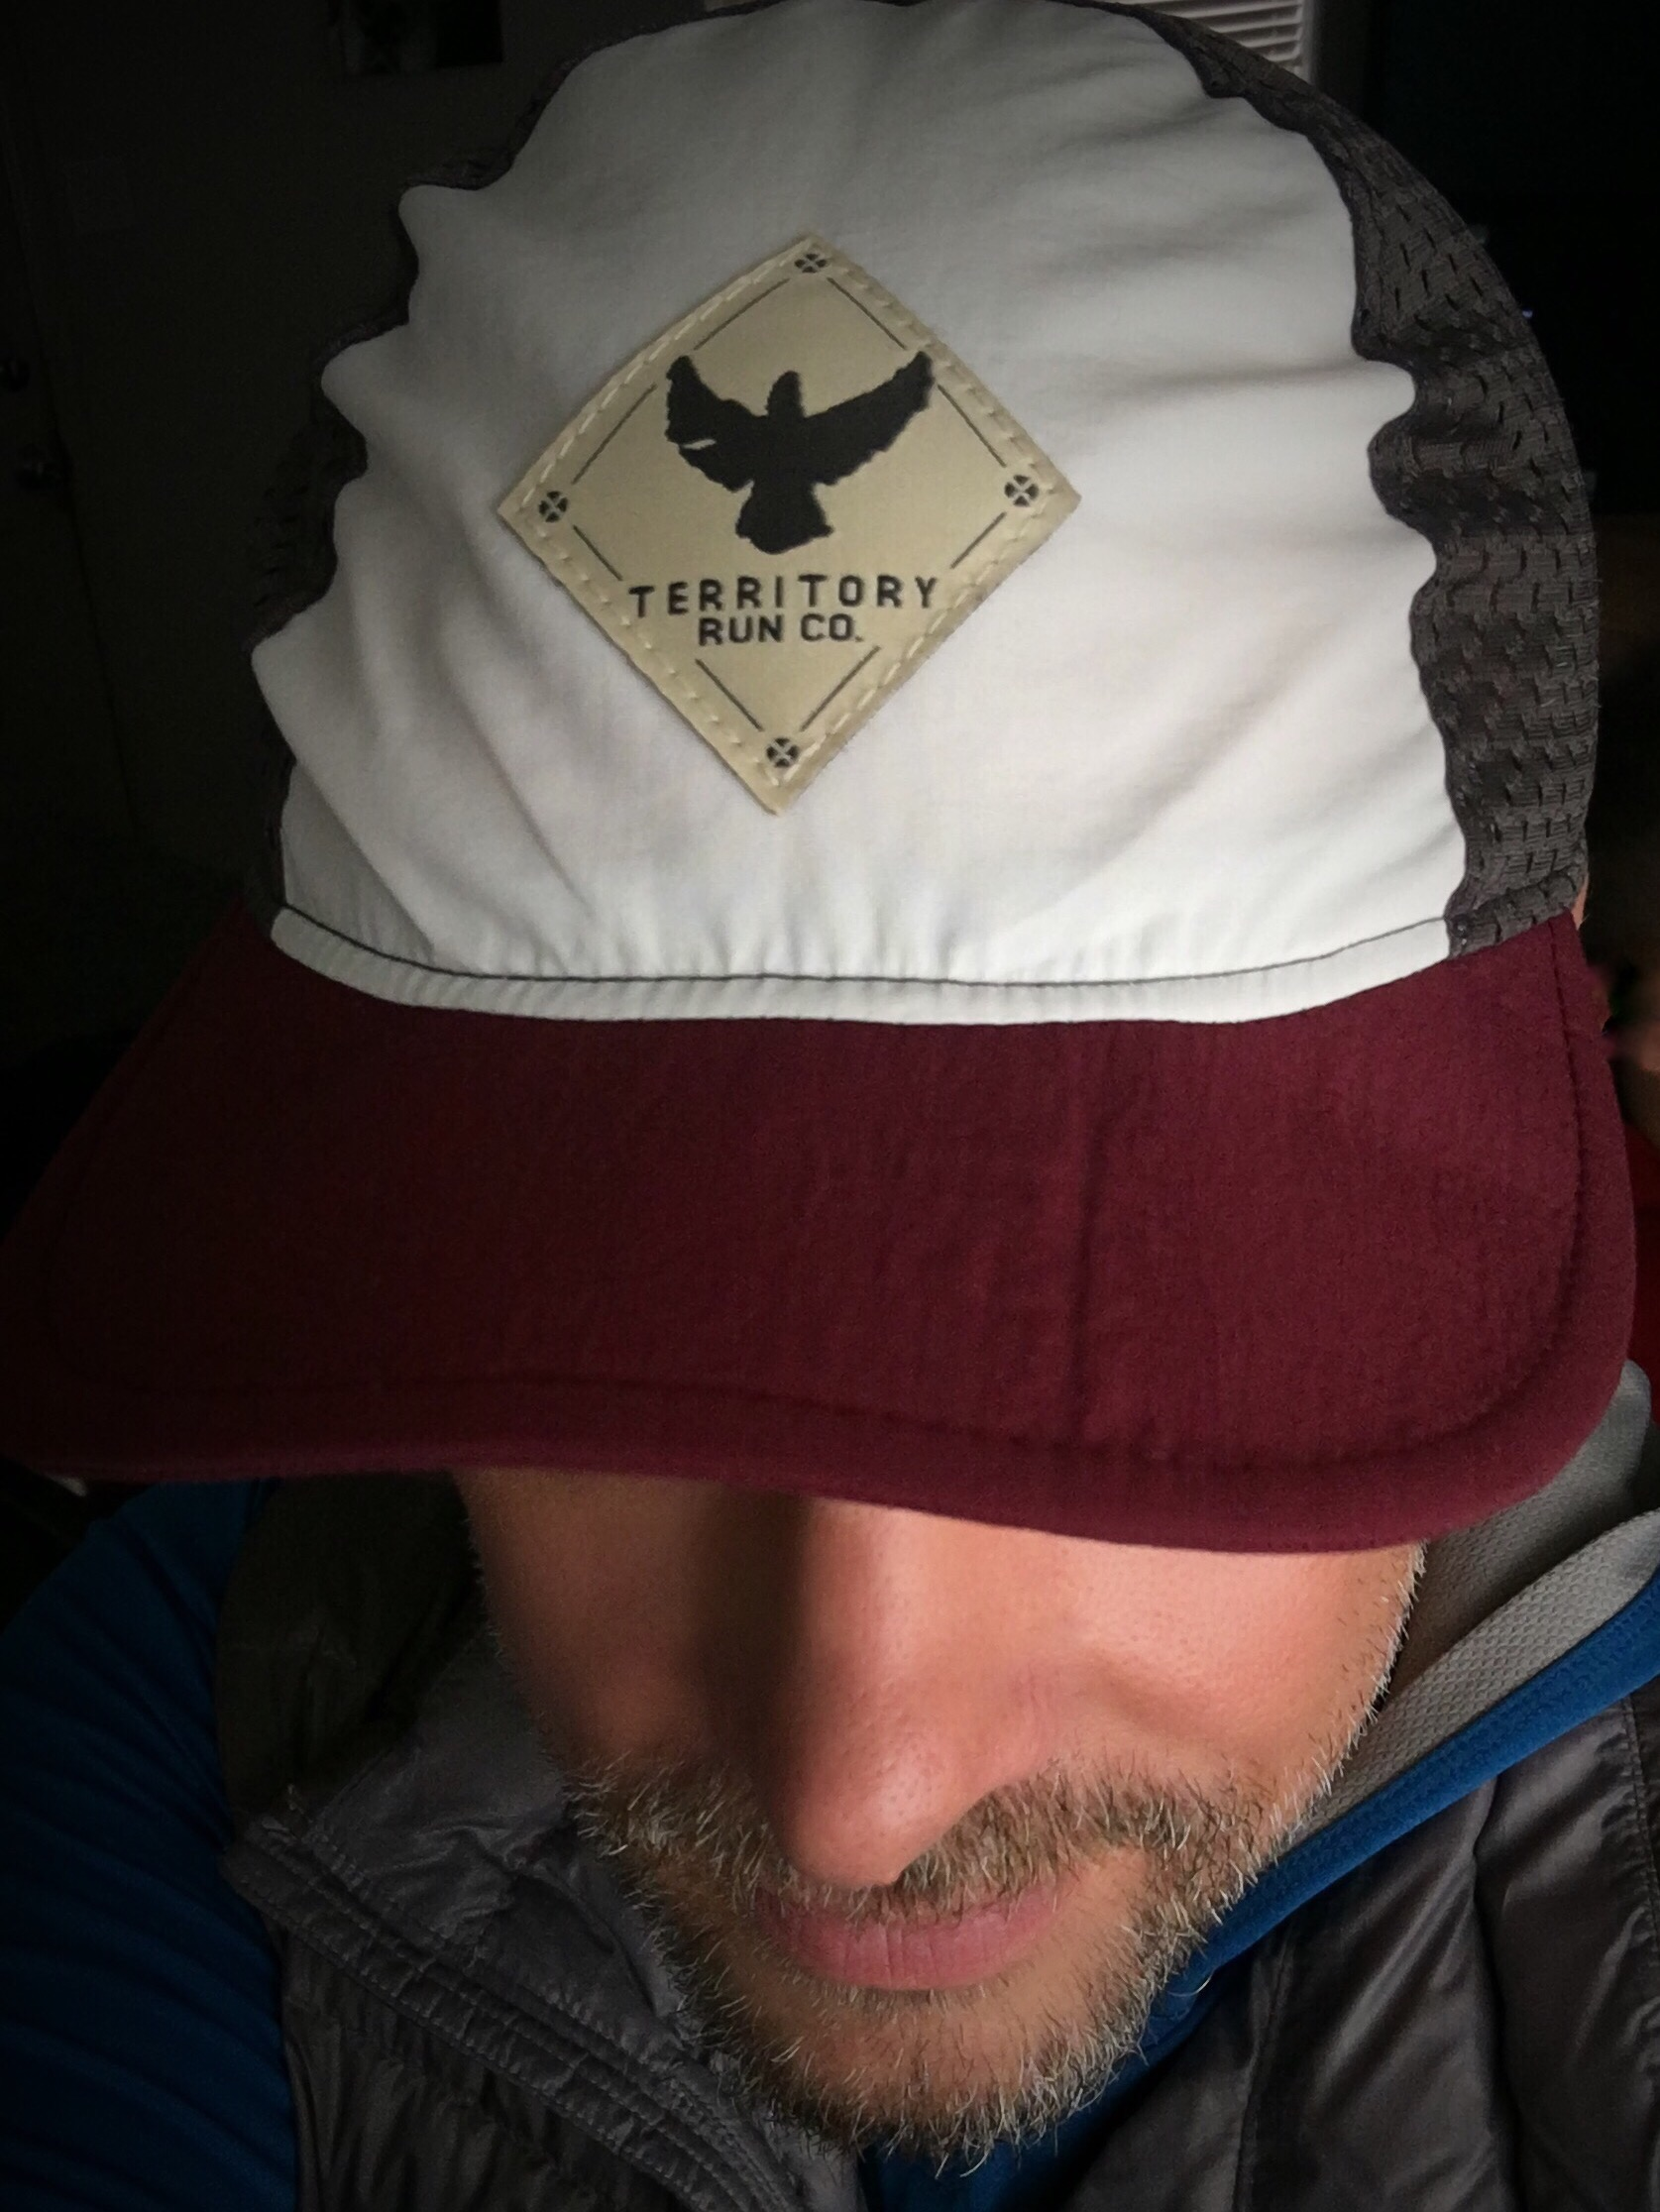 Territory Run Co. hat